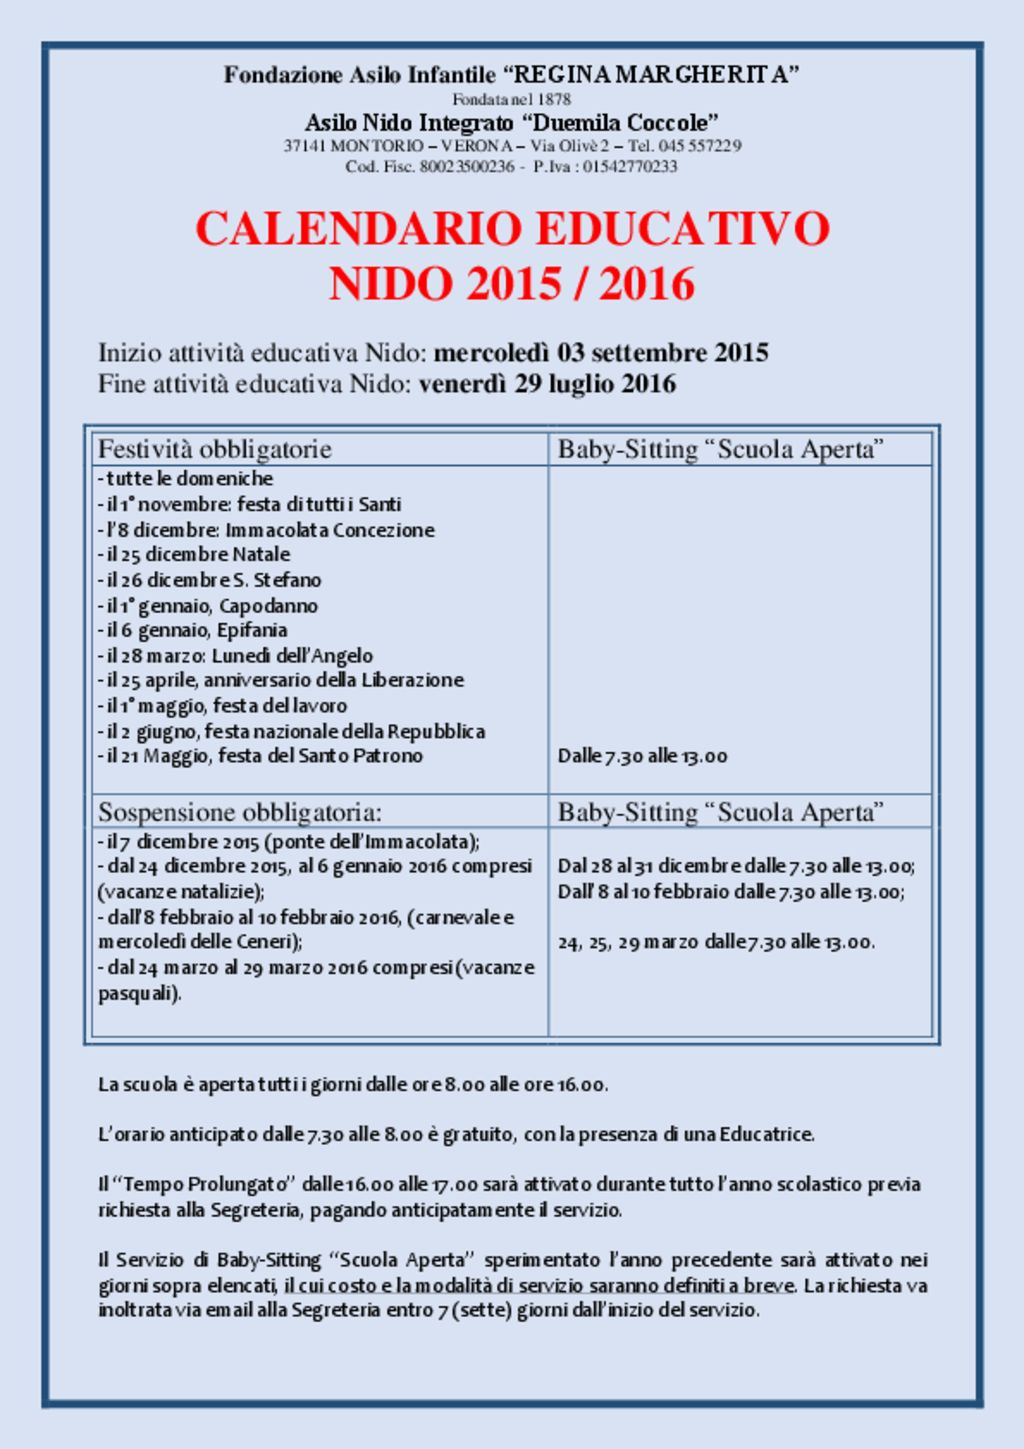 thumbnail of CALENDARIO SCOLASTICO NIDO 2015-2016